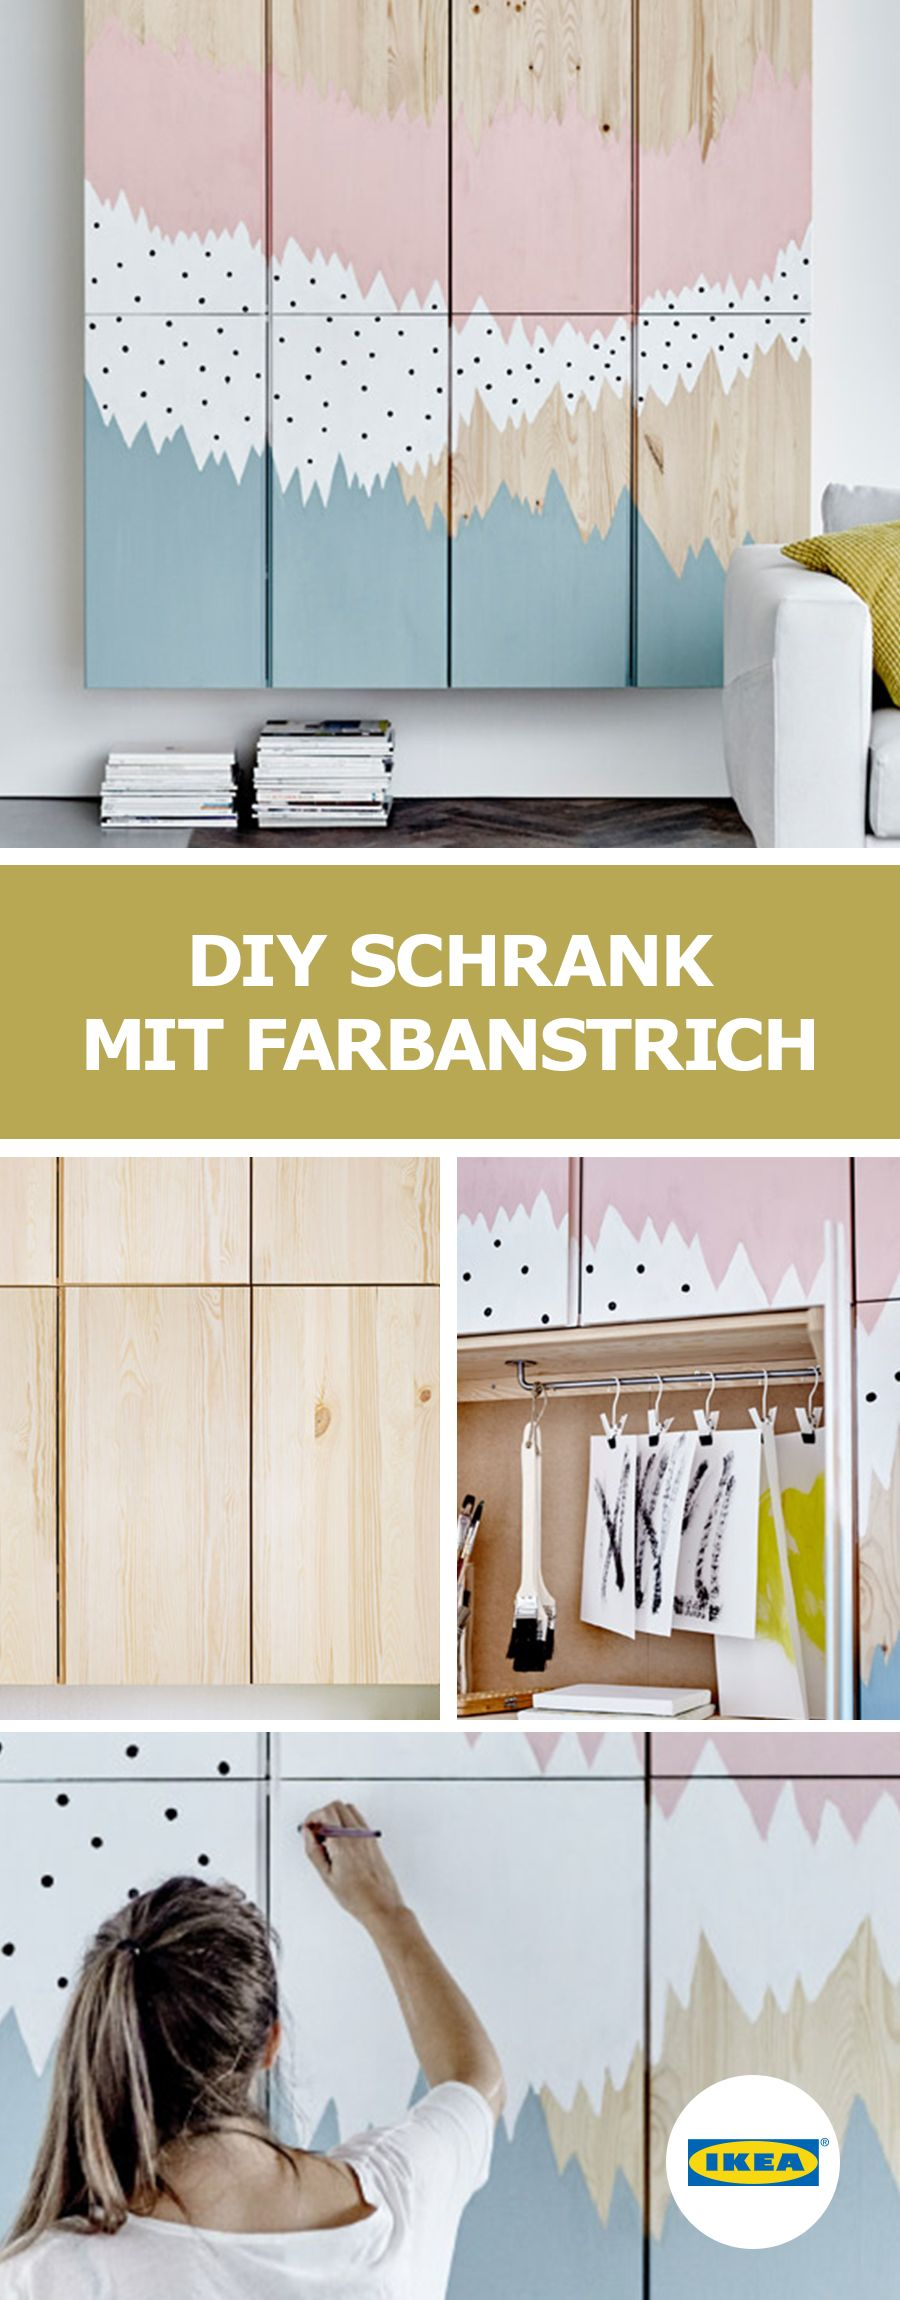 ikea deutschland diy schrank mit farbanstrich do it yourself diy schrank ikea und m bel. Black Bedroom Furniture Sets. Home Design Ideas